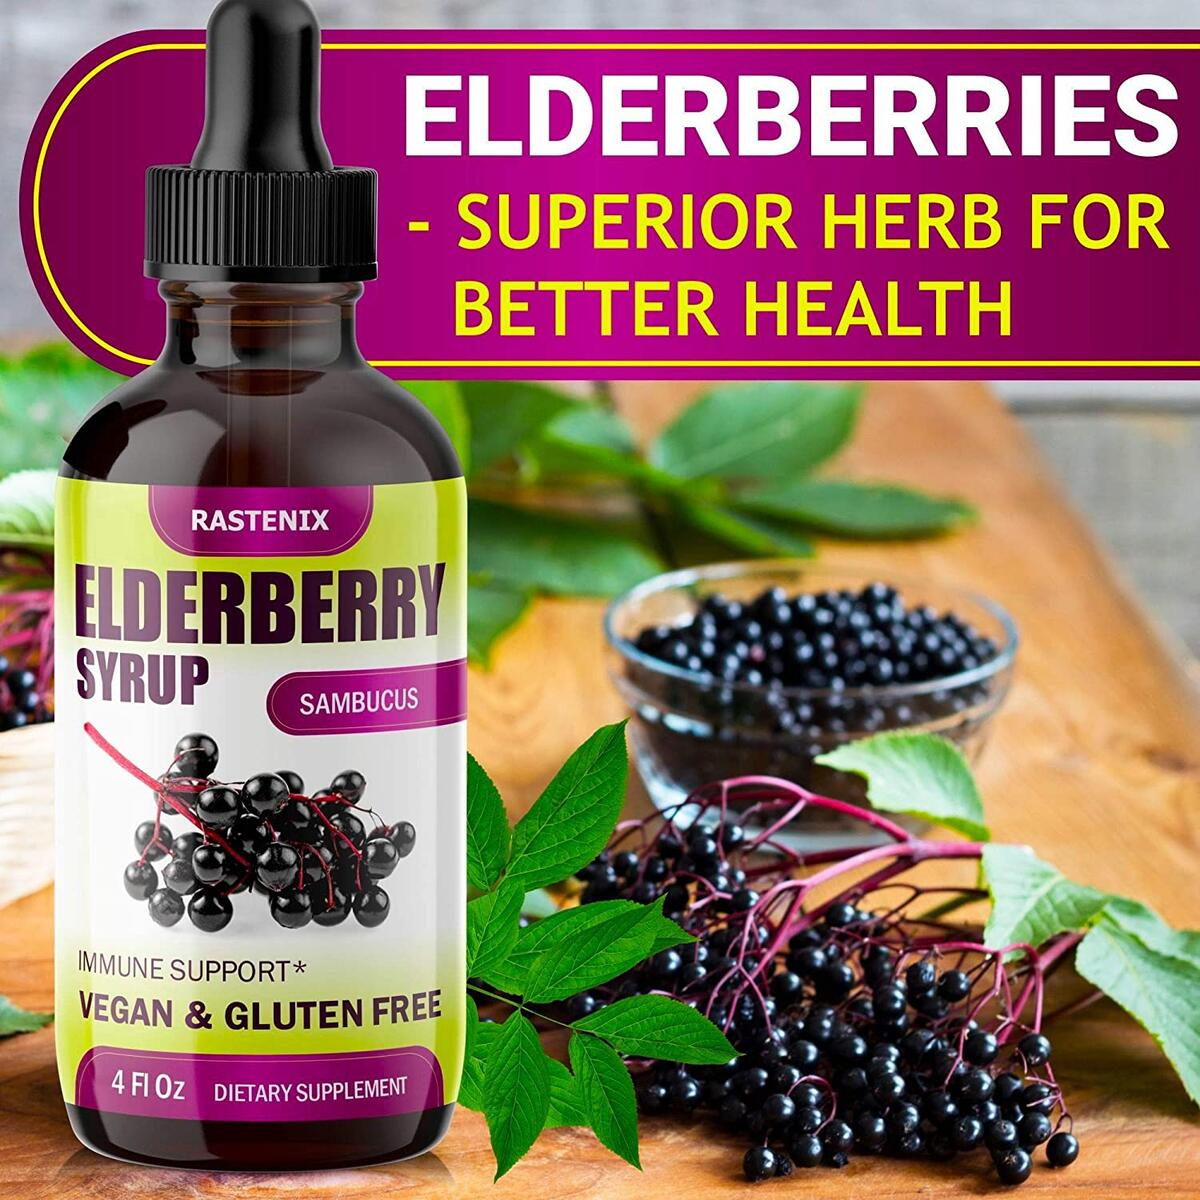 Sambucus Elderberry Syrup - Immunity Support with Antioxidants - Sugar-Free Black Elderberry Extract Liquid for Kids & Adults - Vegan - Easy Absorption - Made in USA - 4 oz